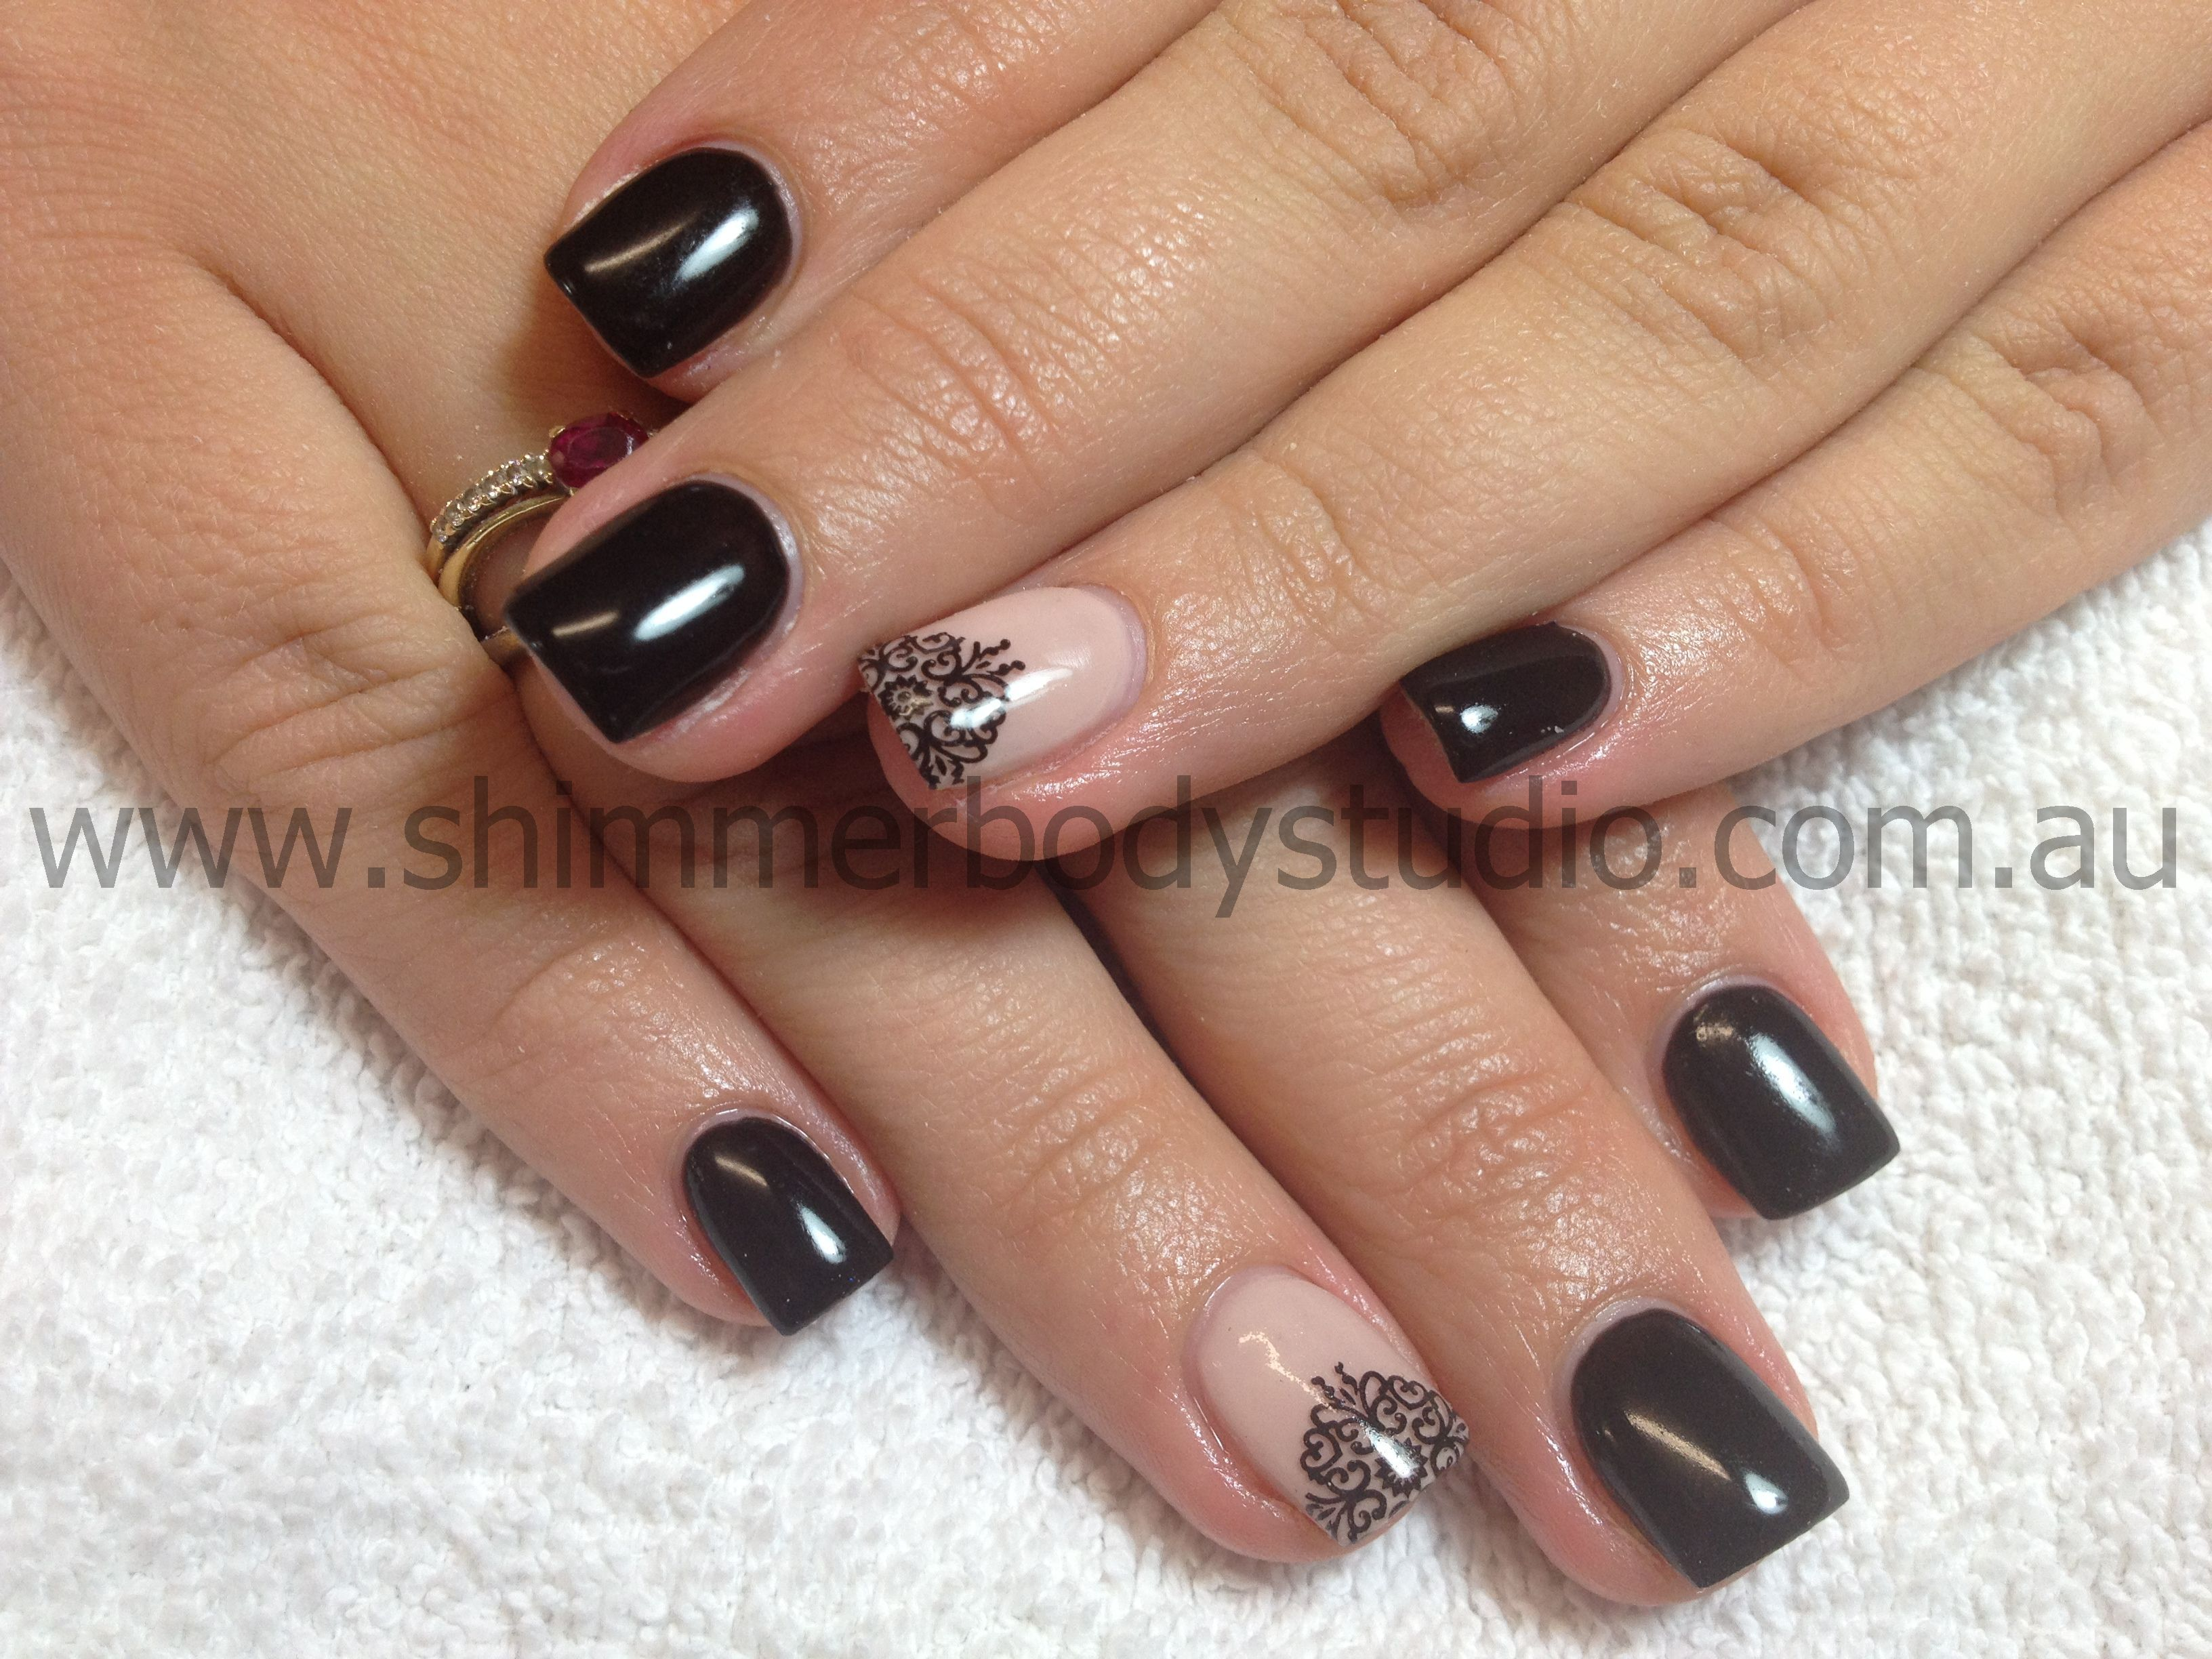 Gel nails, nude nails, black nails, konad stamping nail art. | Nails ...